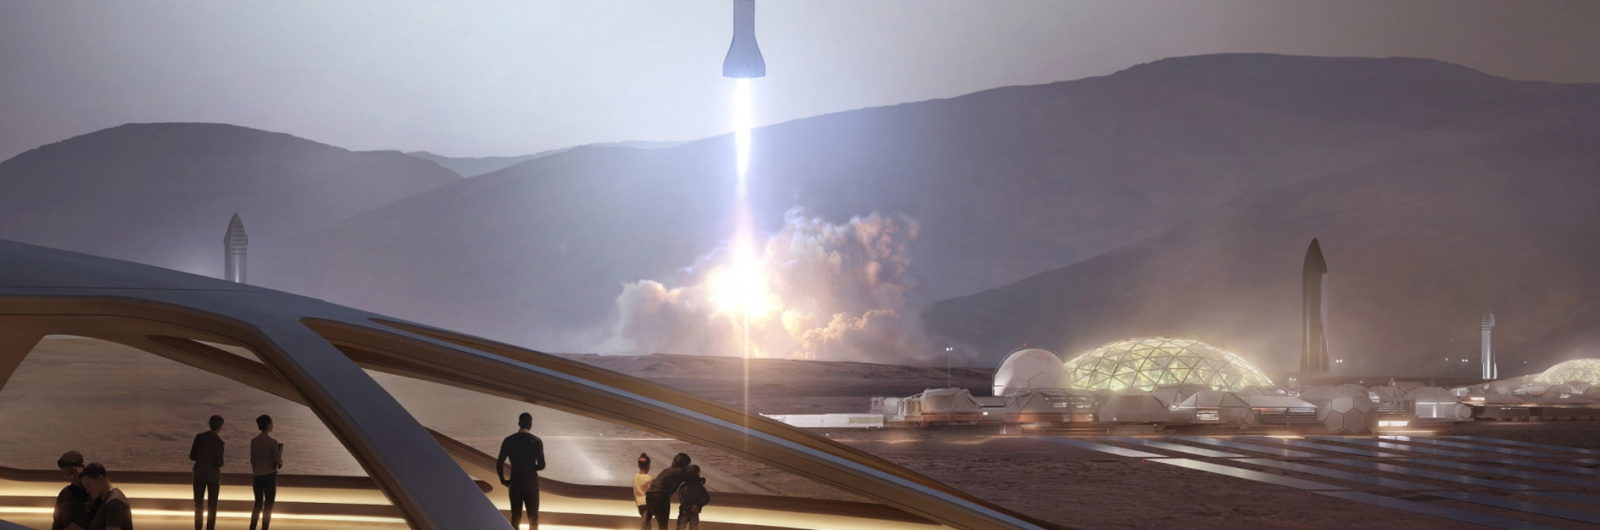 elon-musk-hopes-to-built-a-self-sustaining-city-on-mars-by-2050